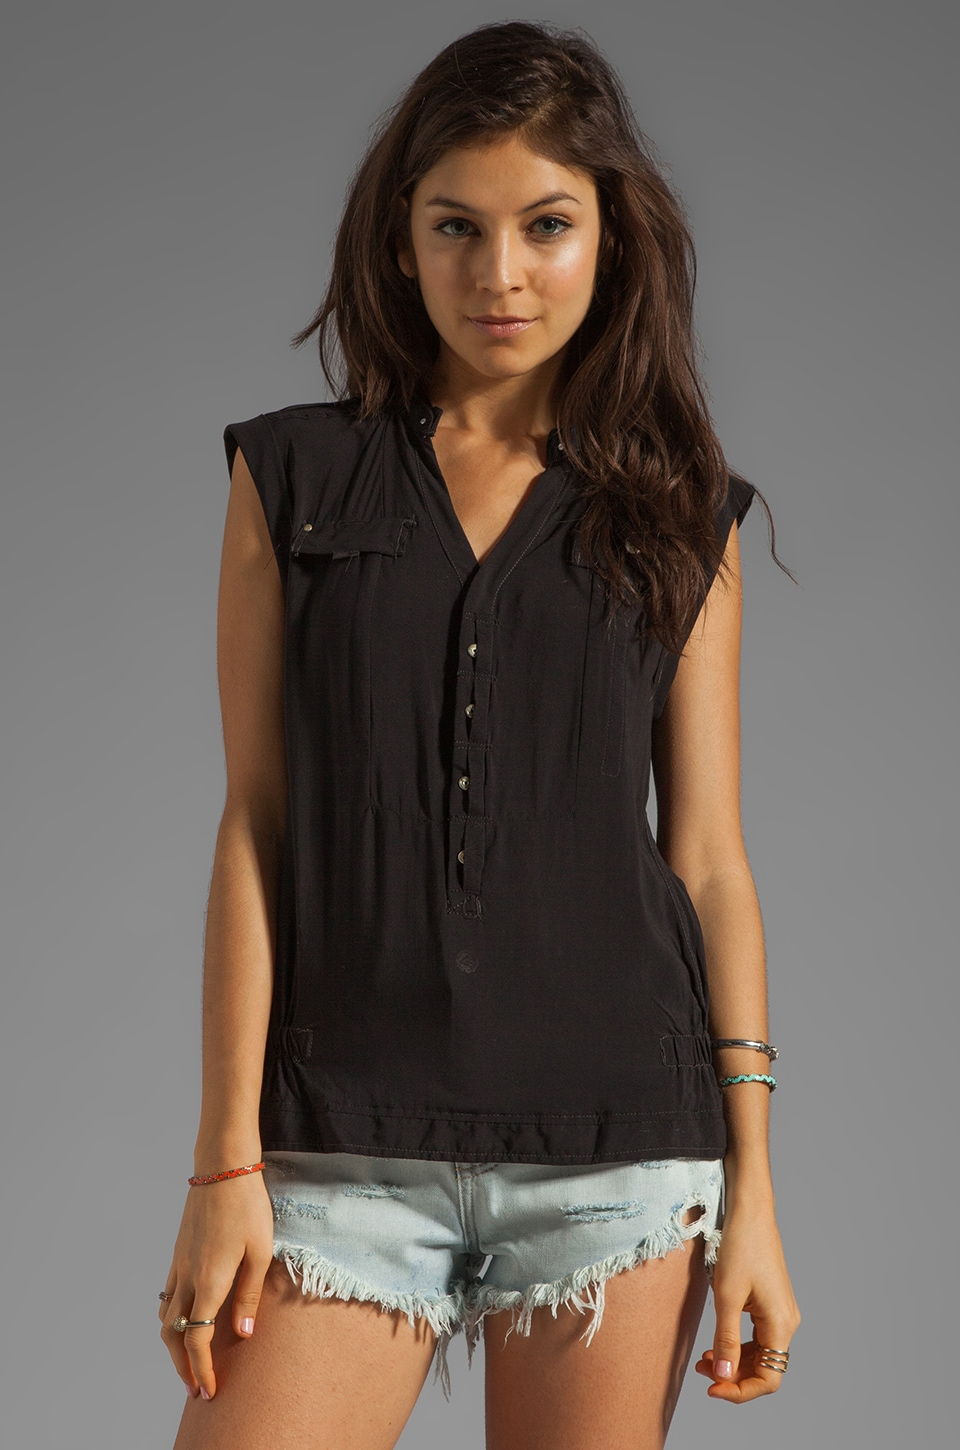 G-Star Tooper Crusader Sleeveless Top in Black